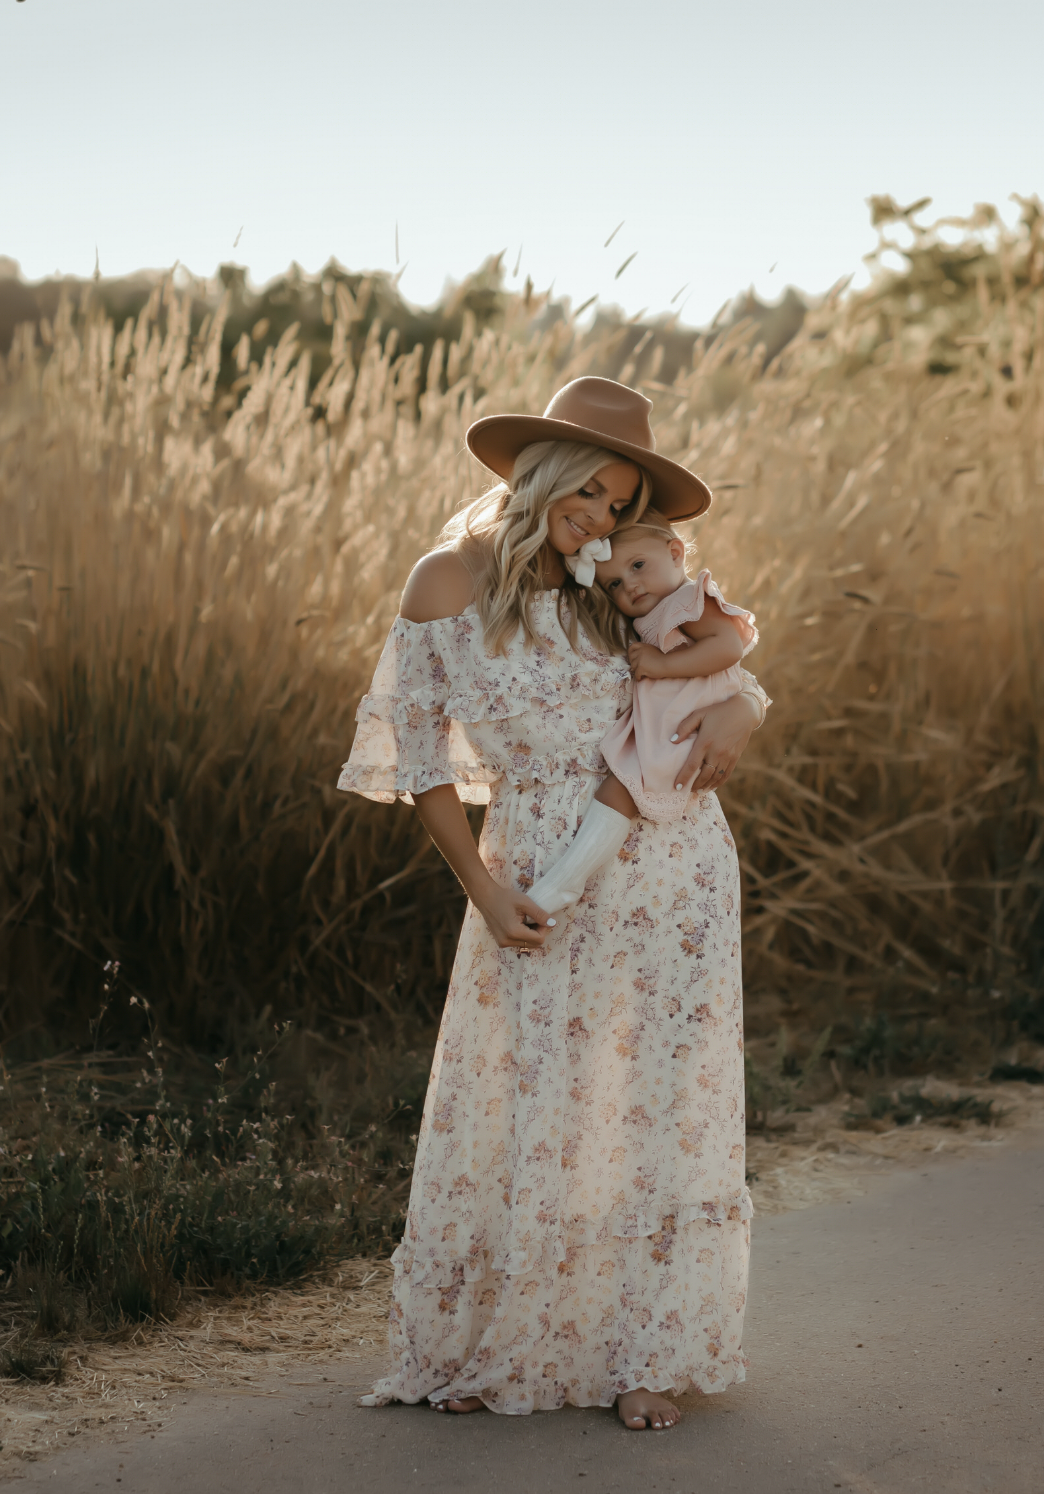 Vici Shop Now With Code Now20 To Save 20 On Your Order Maxi Dresses Fall Maxi Dress Shoulder Maxi Dress [ 1494 x 1044 Pixel ]